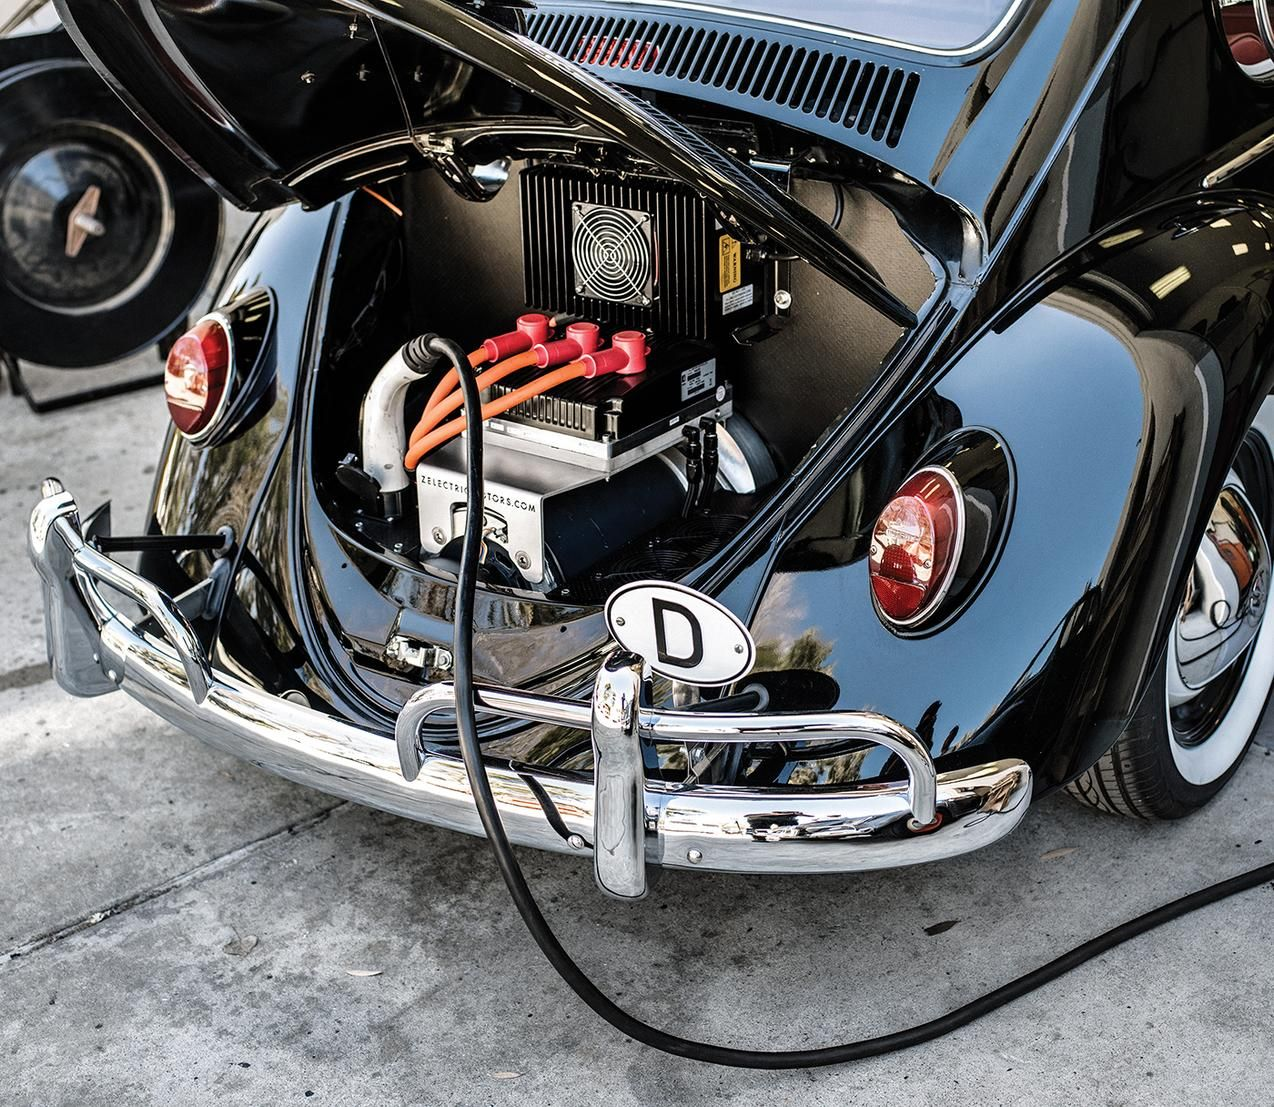 Vw Motor Swap Kits: The Vintage Volkswagen Beetle Goes Electric